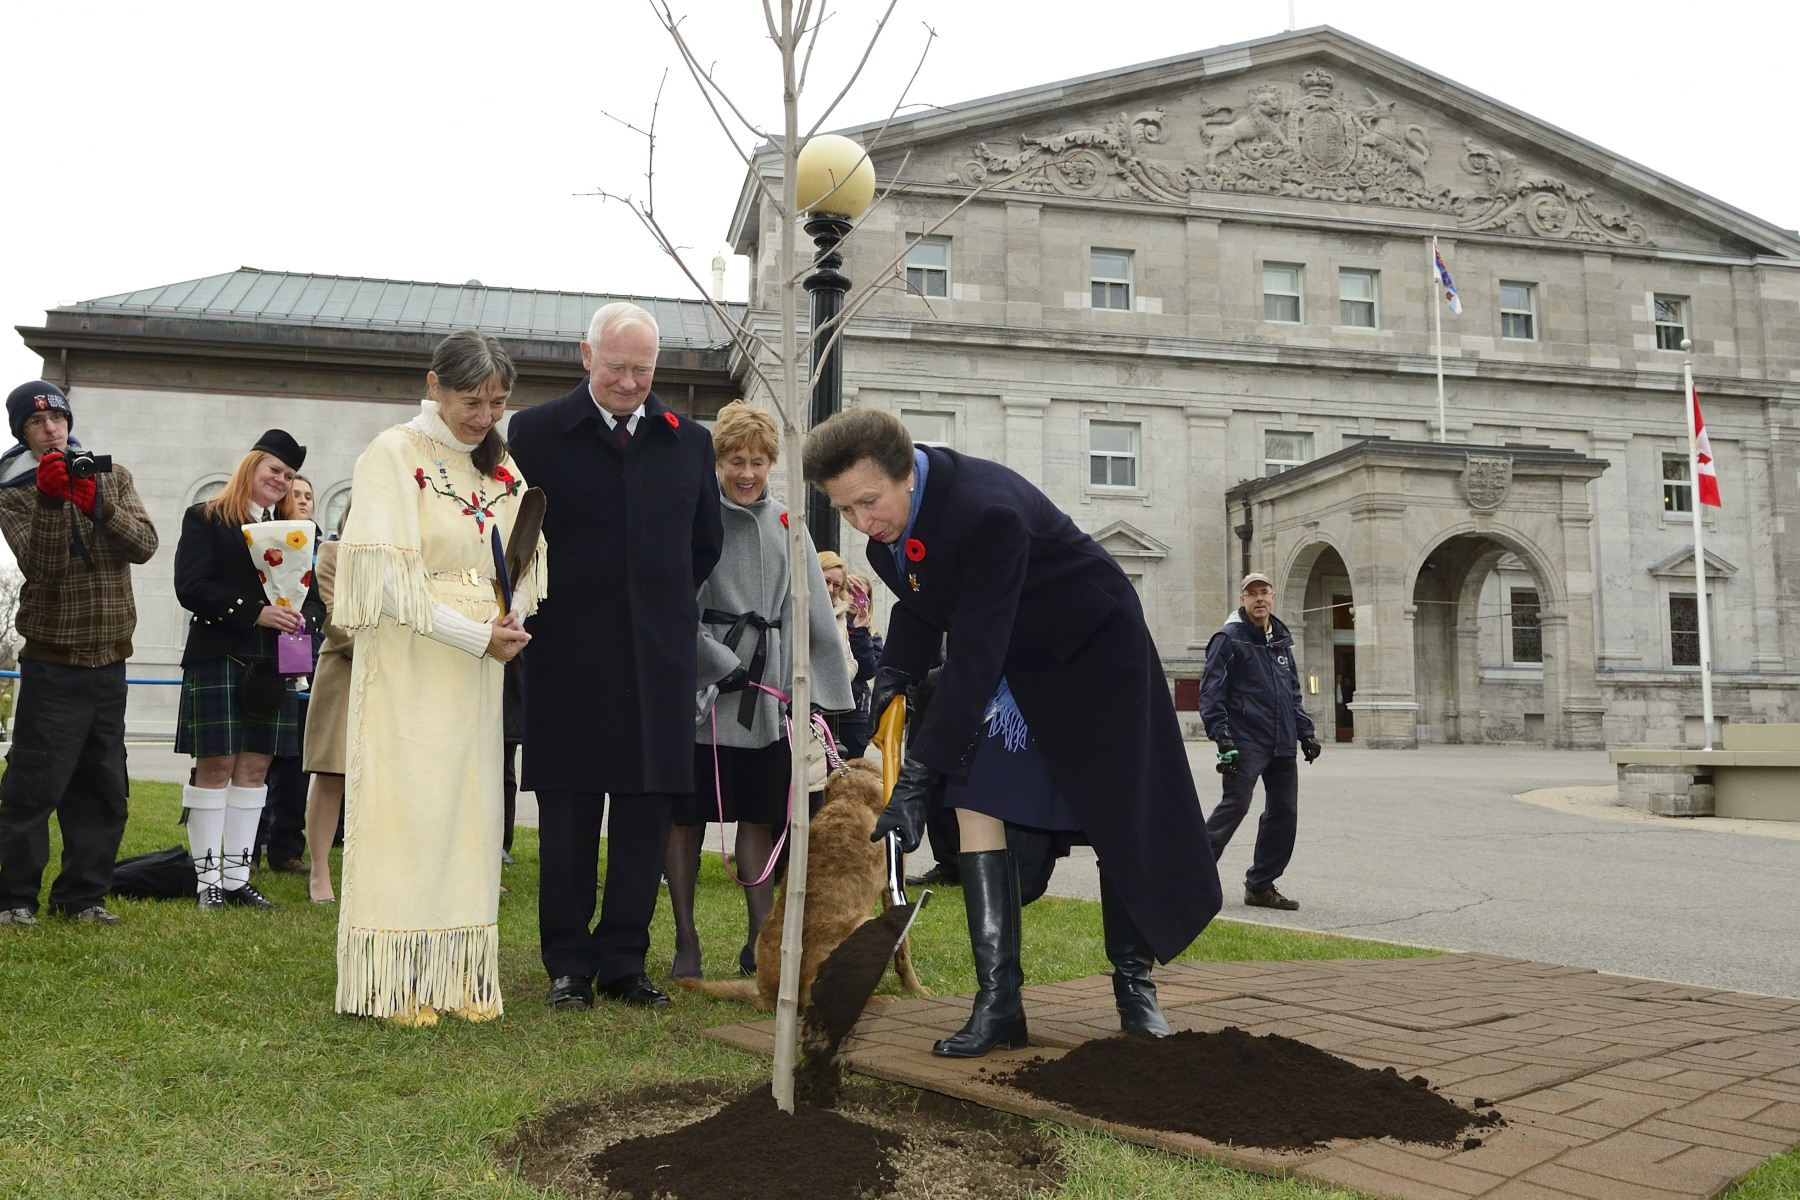 As per tradition, Her Royal Highness and Vice Admiral Laurence, joined by Their Excellencies, planted a tree (red maple) on Rideau Hall grounds.